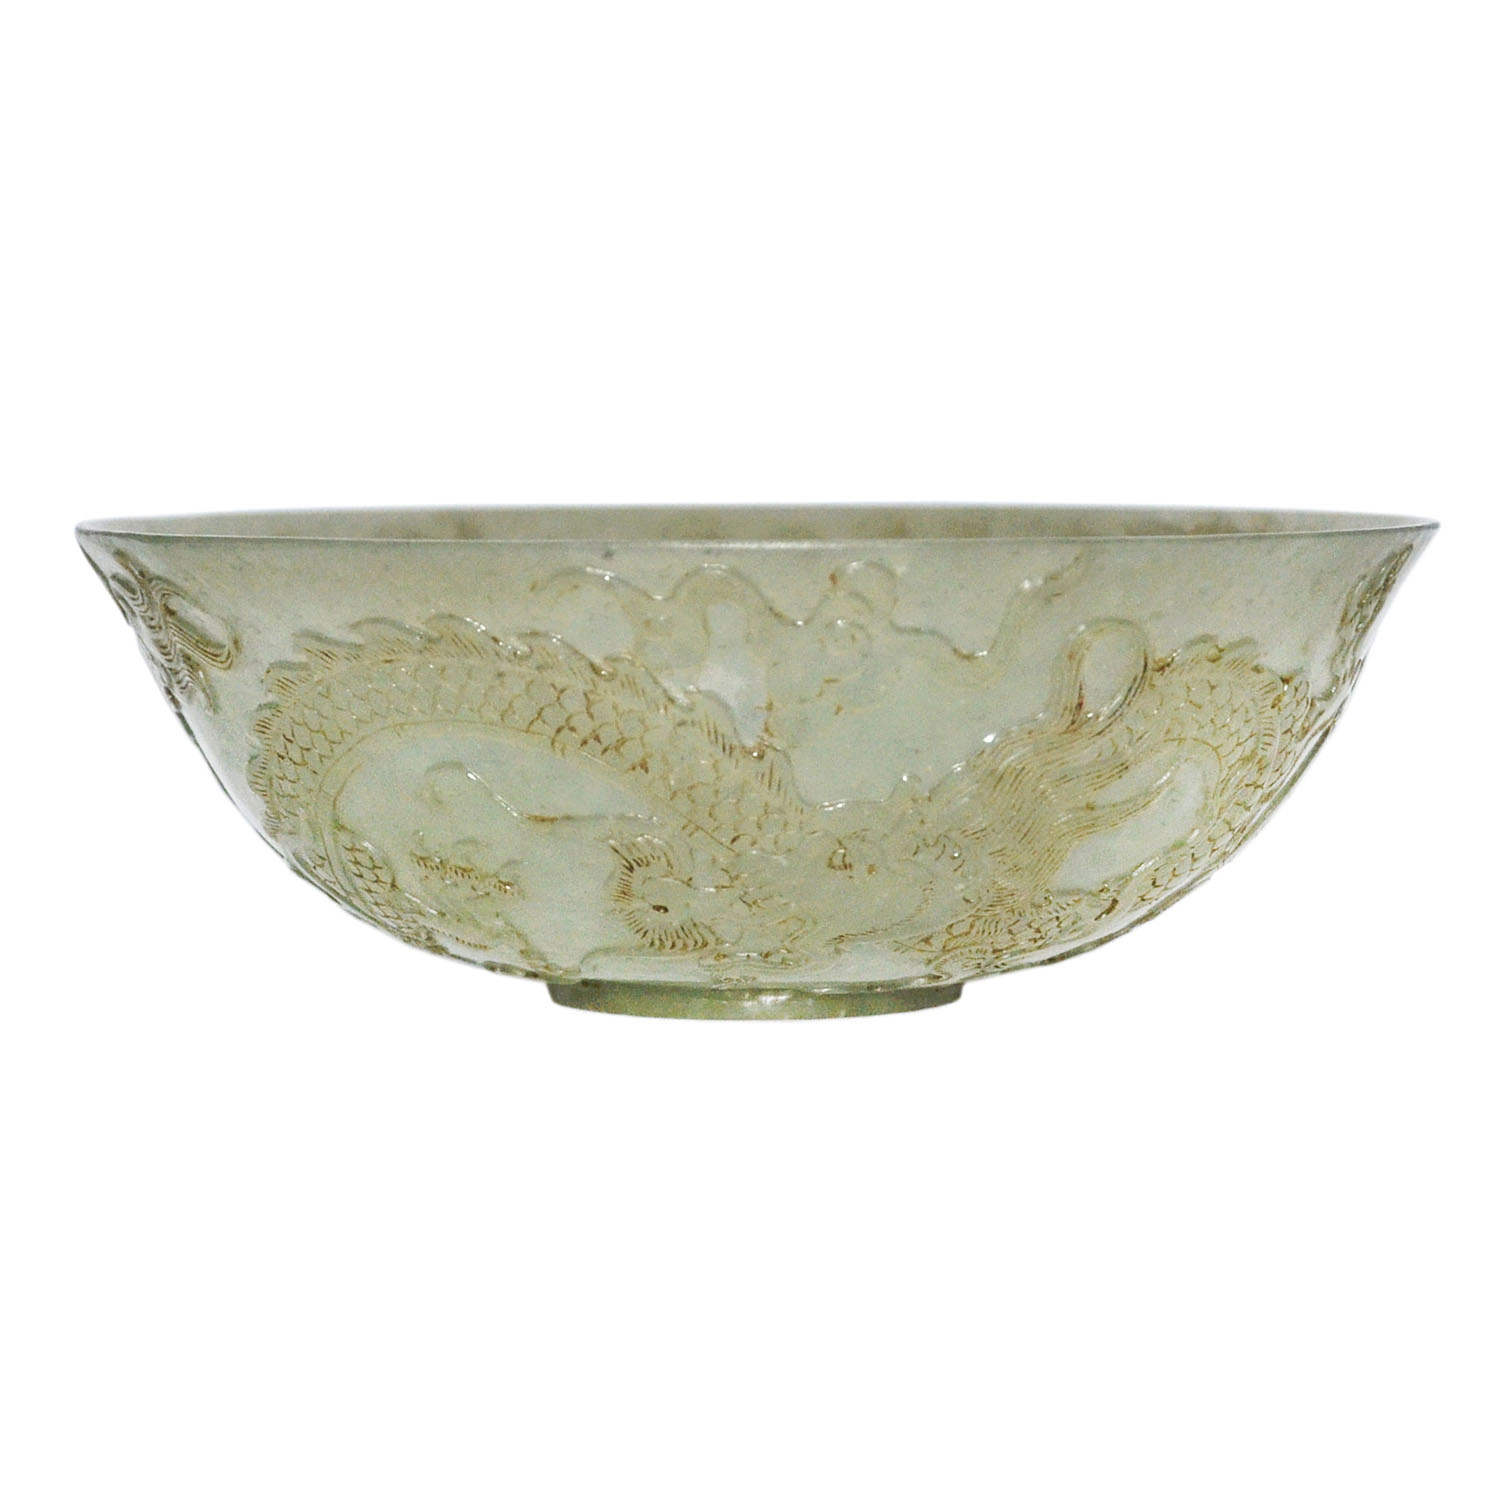 Lot 47 - 玉雕雙龍戲珠碗 A Well Carved Jade Bowl Shallow relief carved with dragons chasing flaming pearl on the